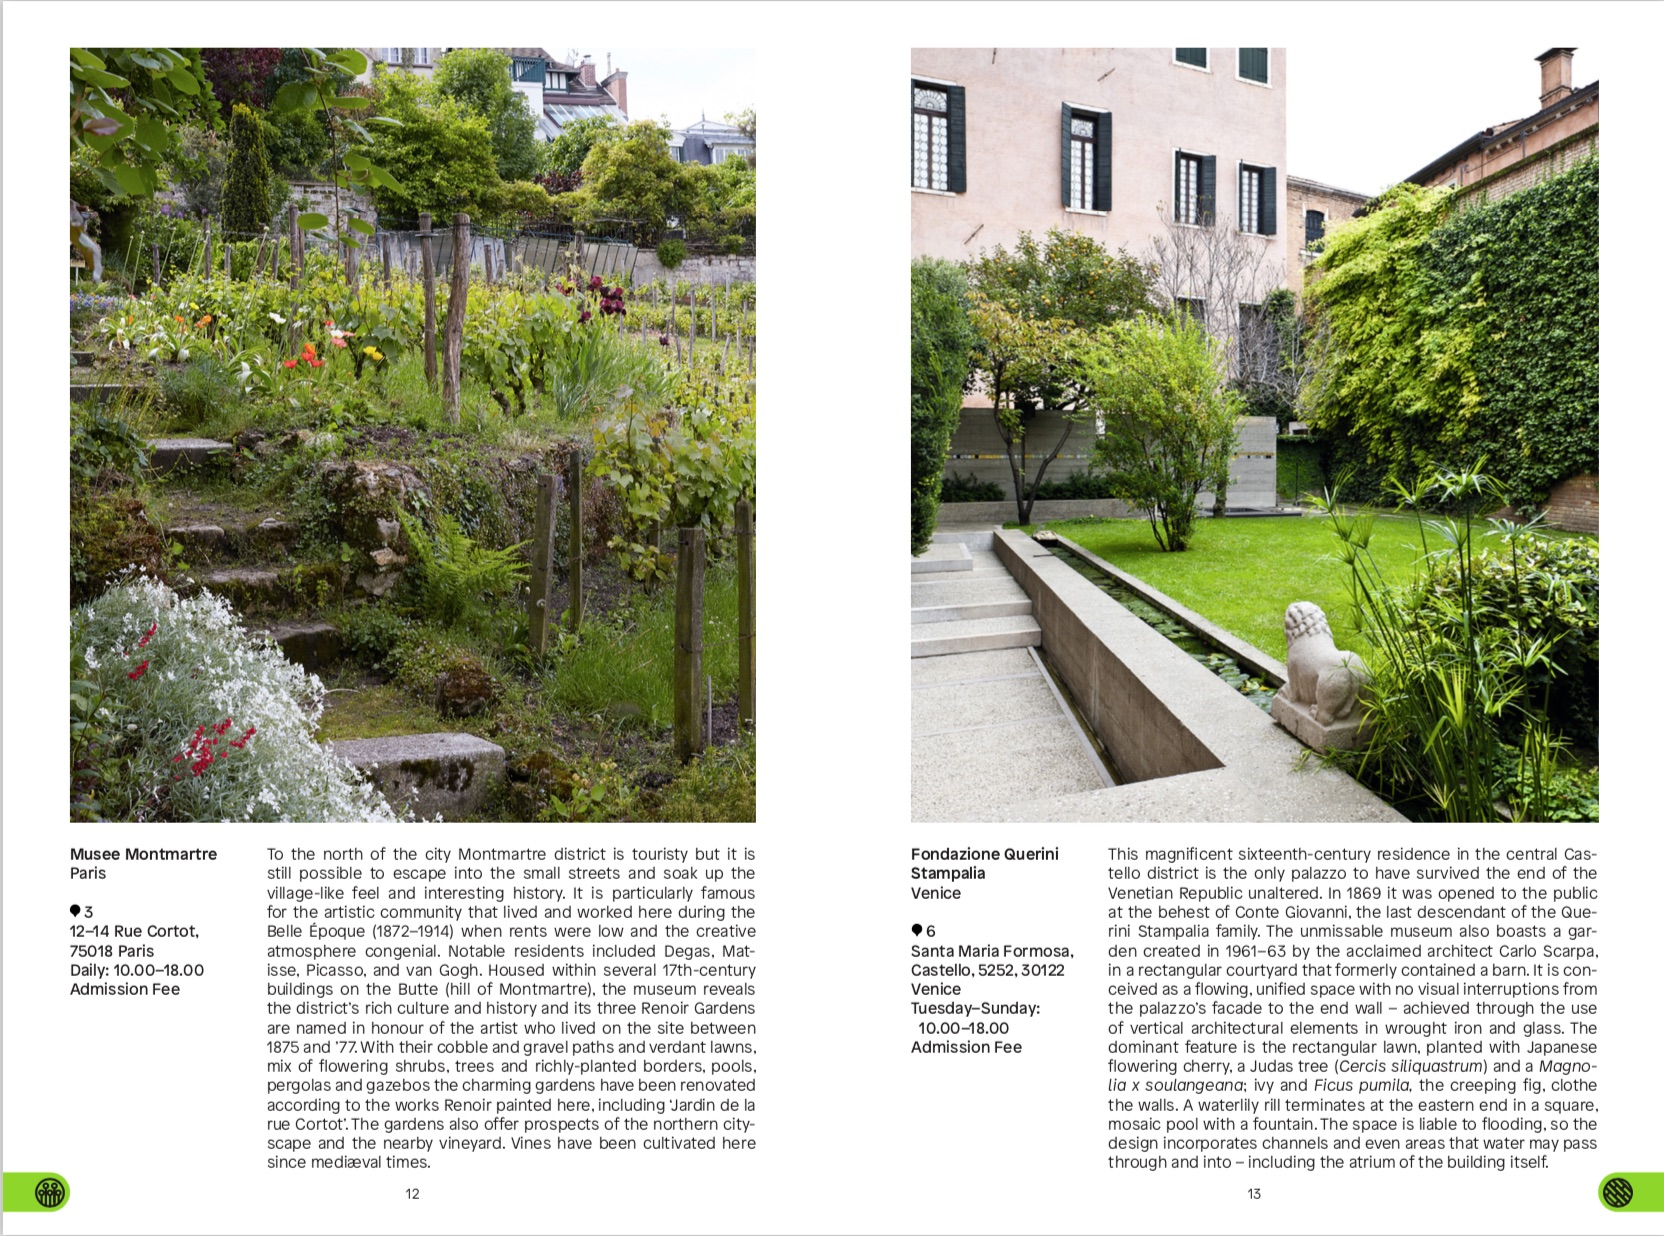 By Toby Musgrave from Green Escapes: The Guide to Secret Urban Gardens copyright Phaidon 2018